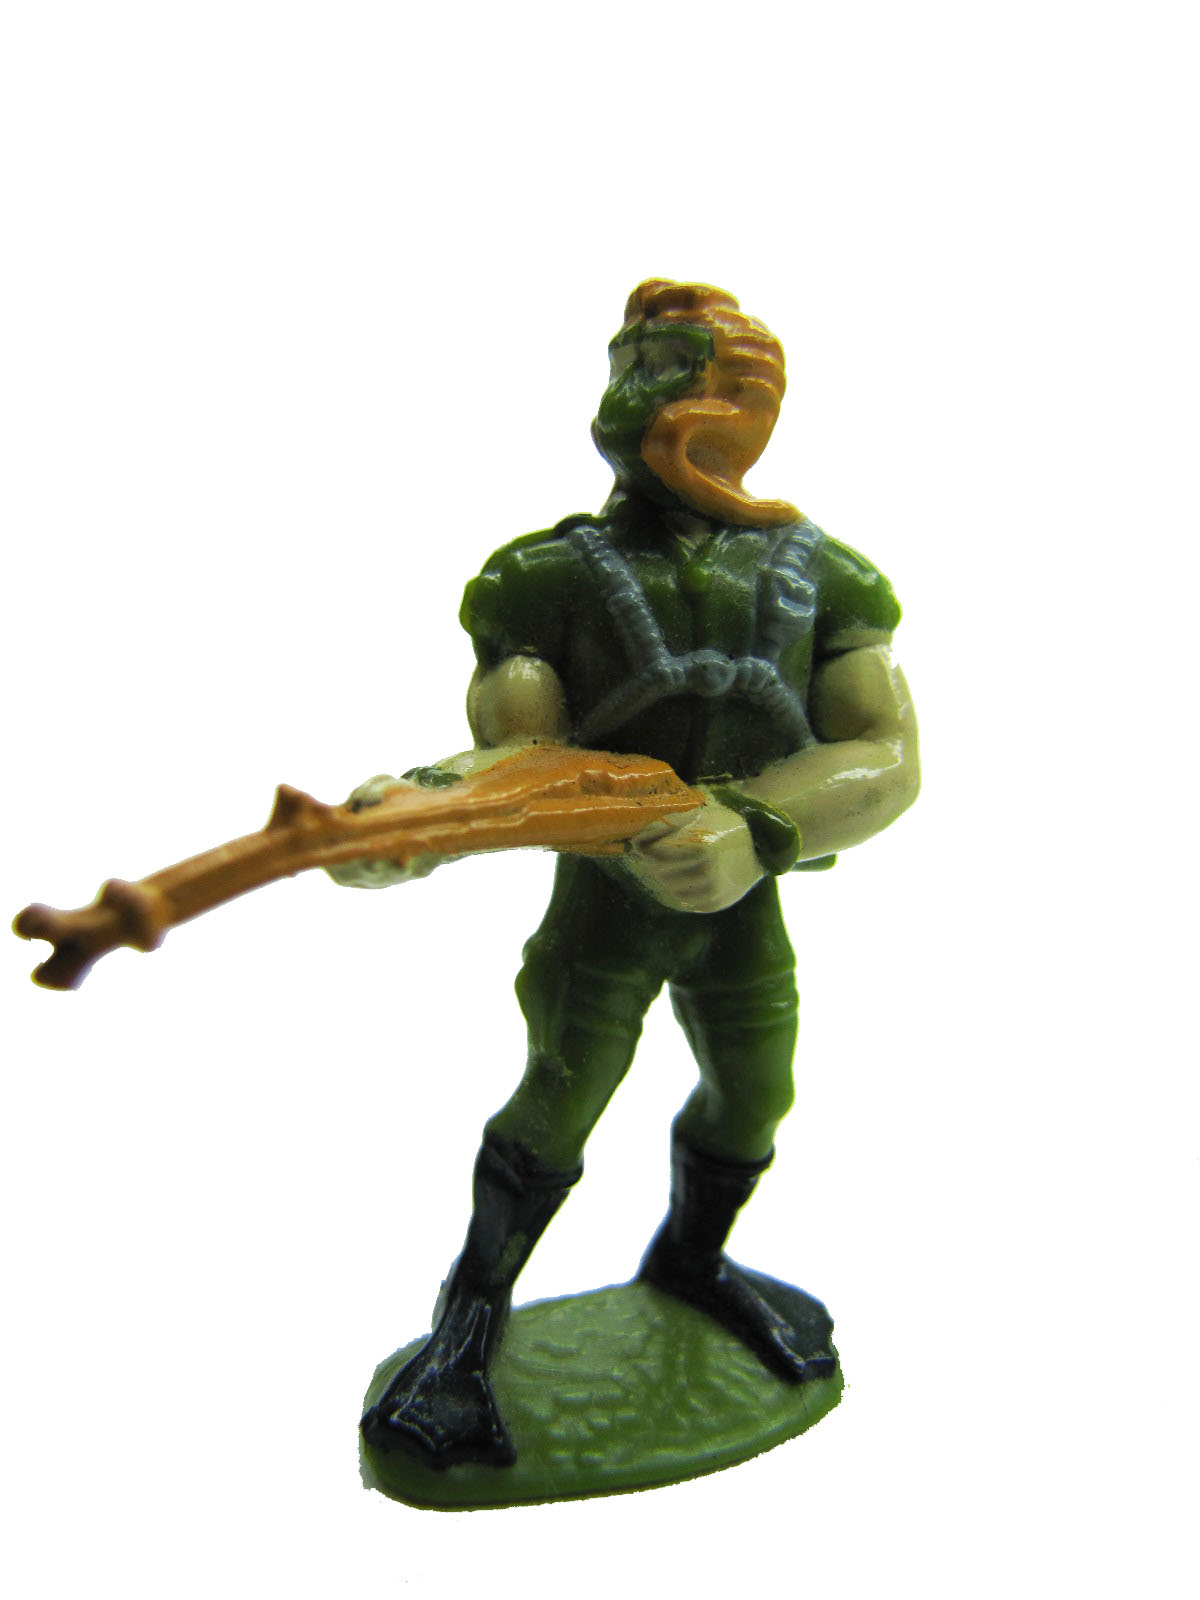 GIJoe Micro Series Wet-Suit